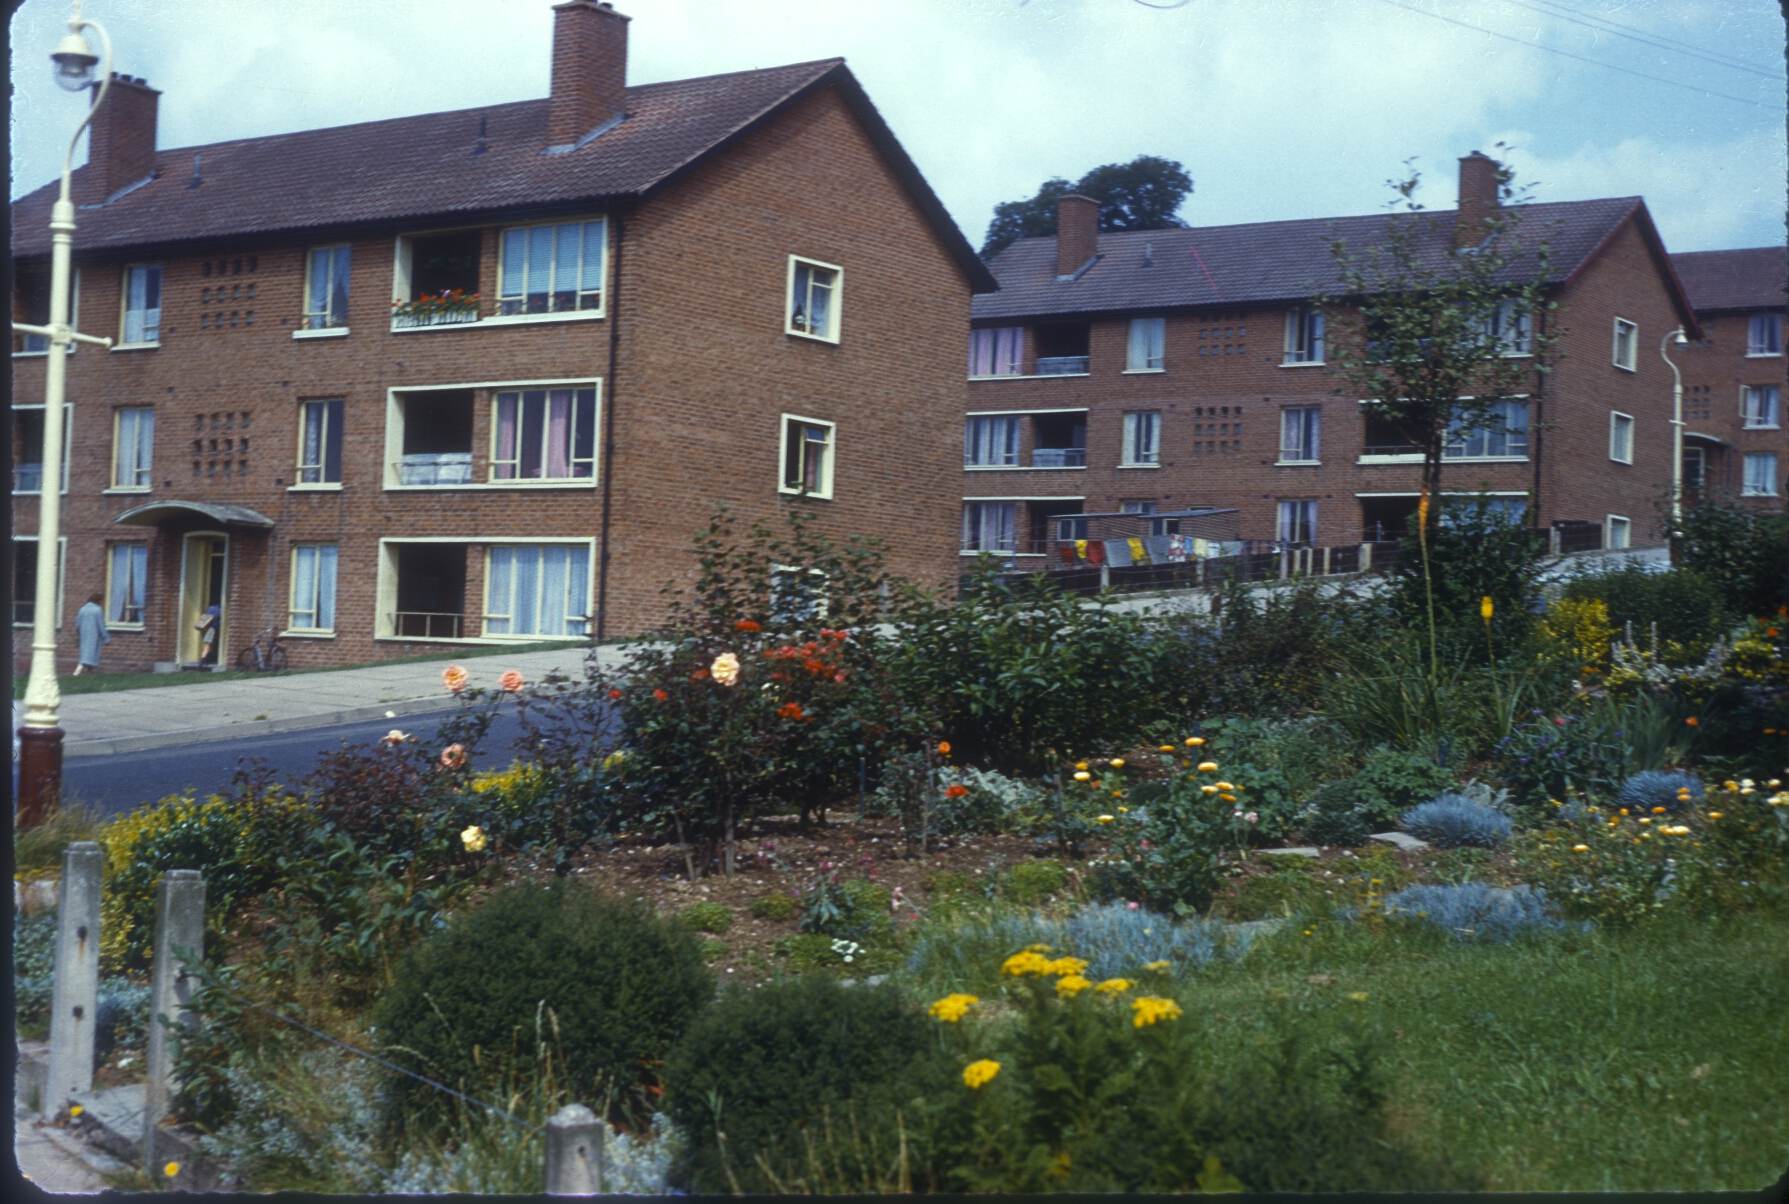 Harborne Hillyfields Estate, Ferncliffe Road. 12th August 1960